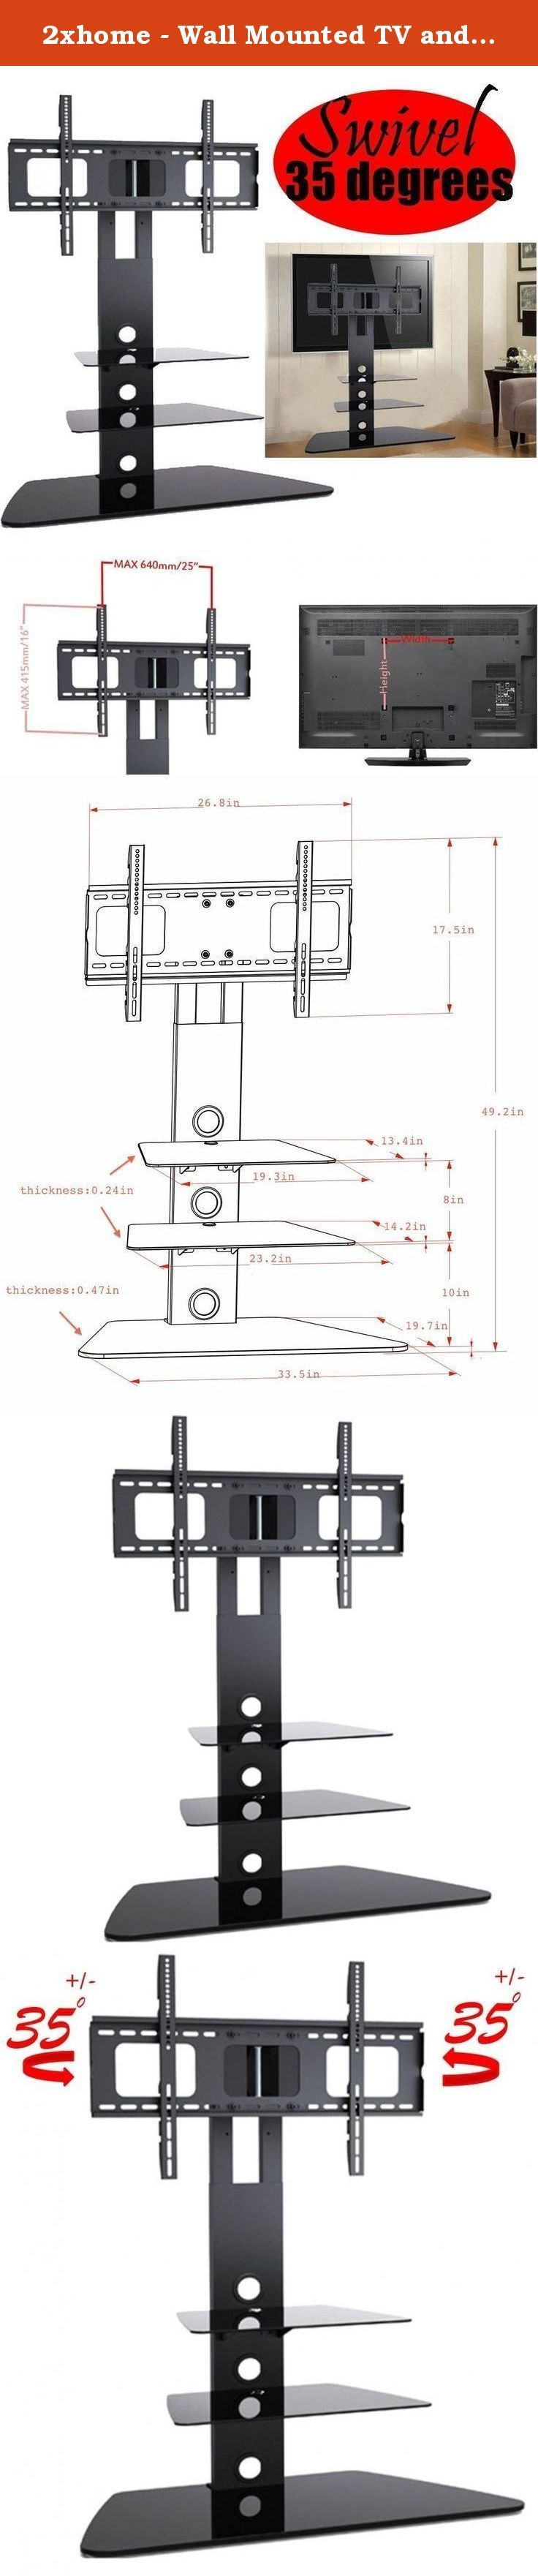 2xhome - Wall Mounted TV and Component Shelf Combo DVD DVR VCR Wall Mount Bracket for TV and DVD Player DSS Receiver Blu-Ray Media VCR Stereo Cable Box - Adjustable Electronic Component Shelf Holder Glass. NOTES: Your TV must be meeting below three requirements and we guarantee this TV mount stand would work for your TV: 1. Please make sure the weight of your TV is less than or equal to 140Lbs 2. Please make sure your TV dimension is LARGER than 30.7 in (W) x 20.6 in (H), because you do…